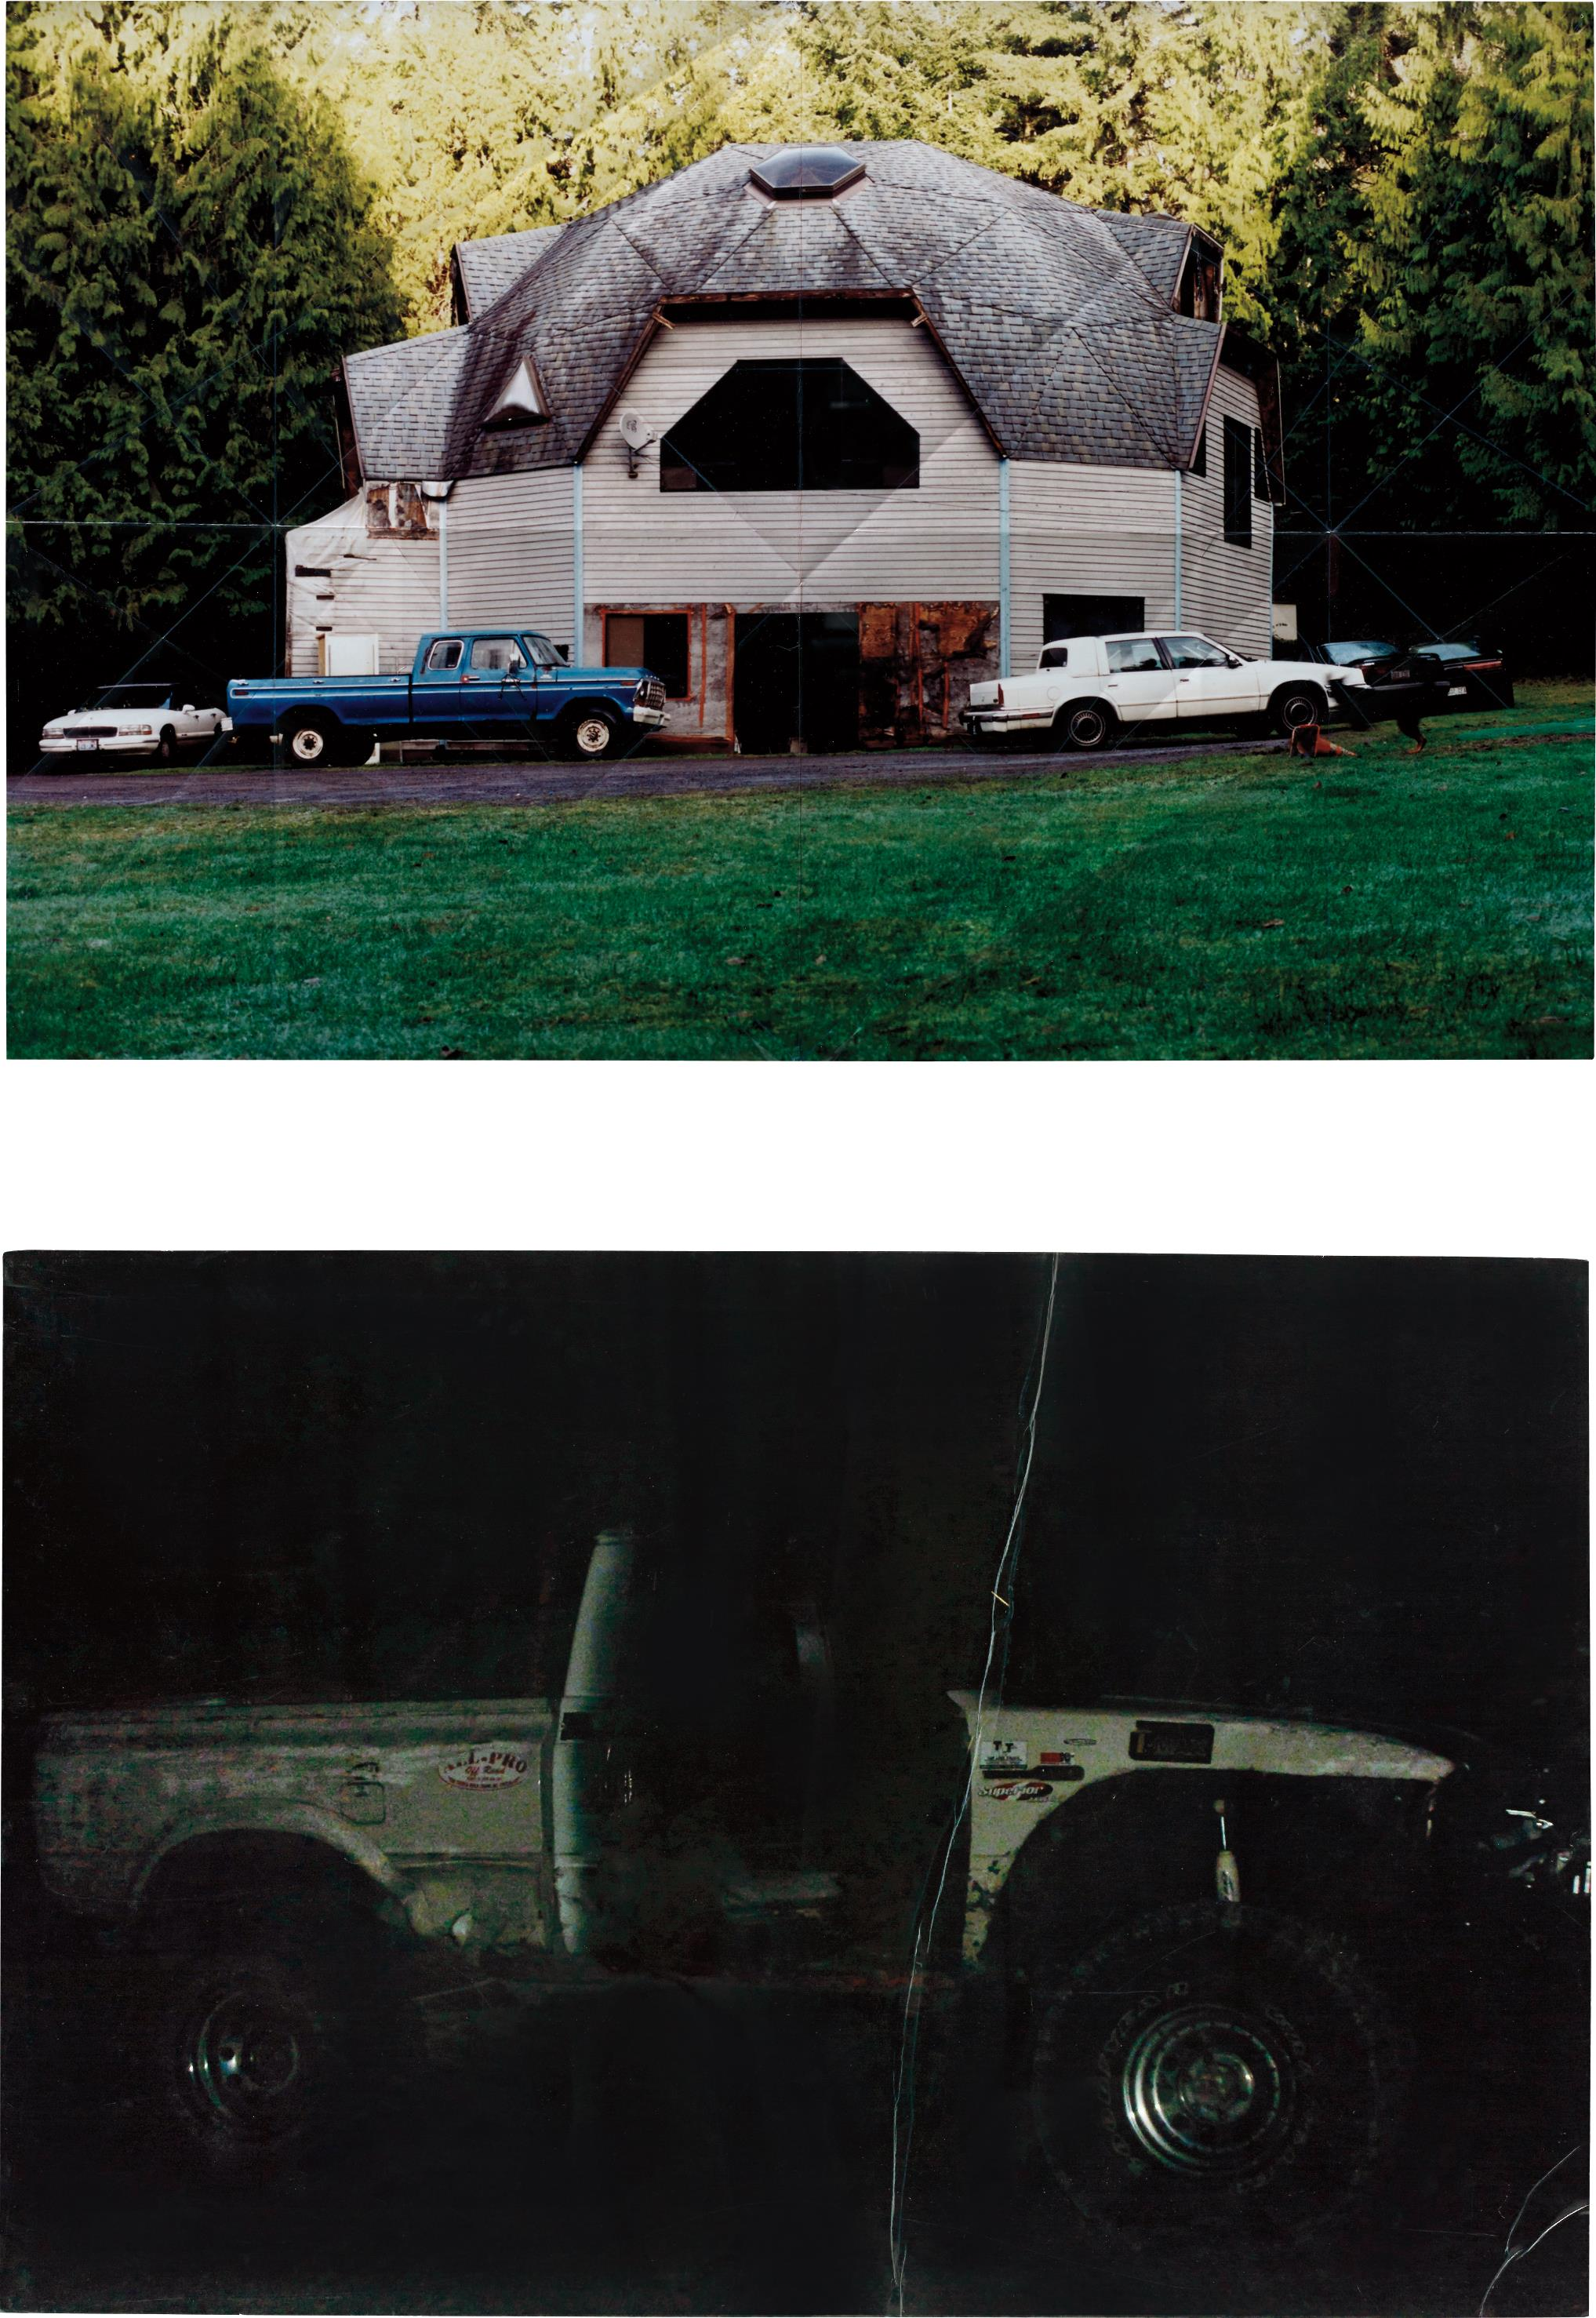 Two works: (i) Geodesic Dome House; (ii) Off Road-2007